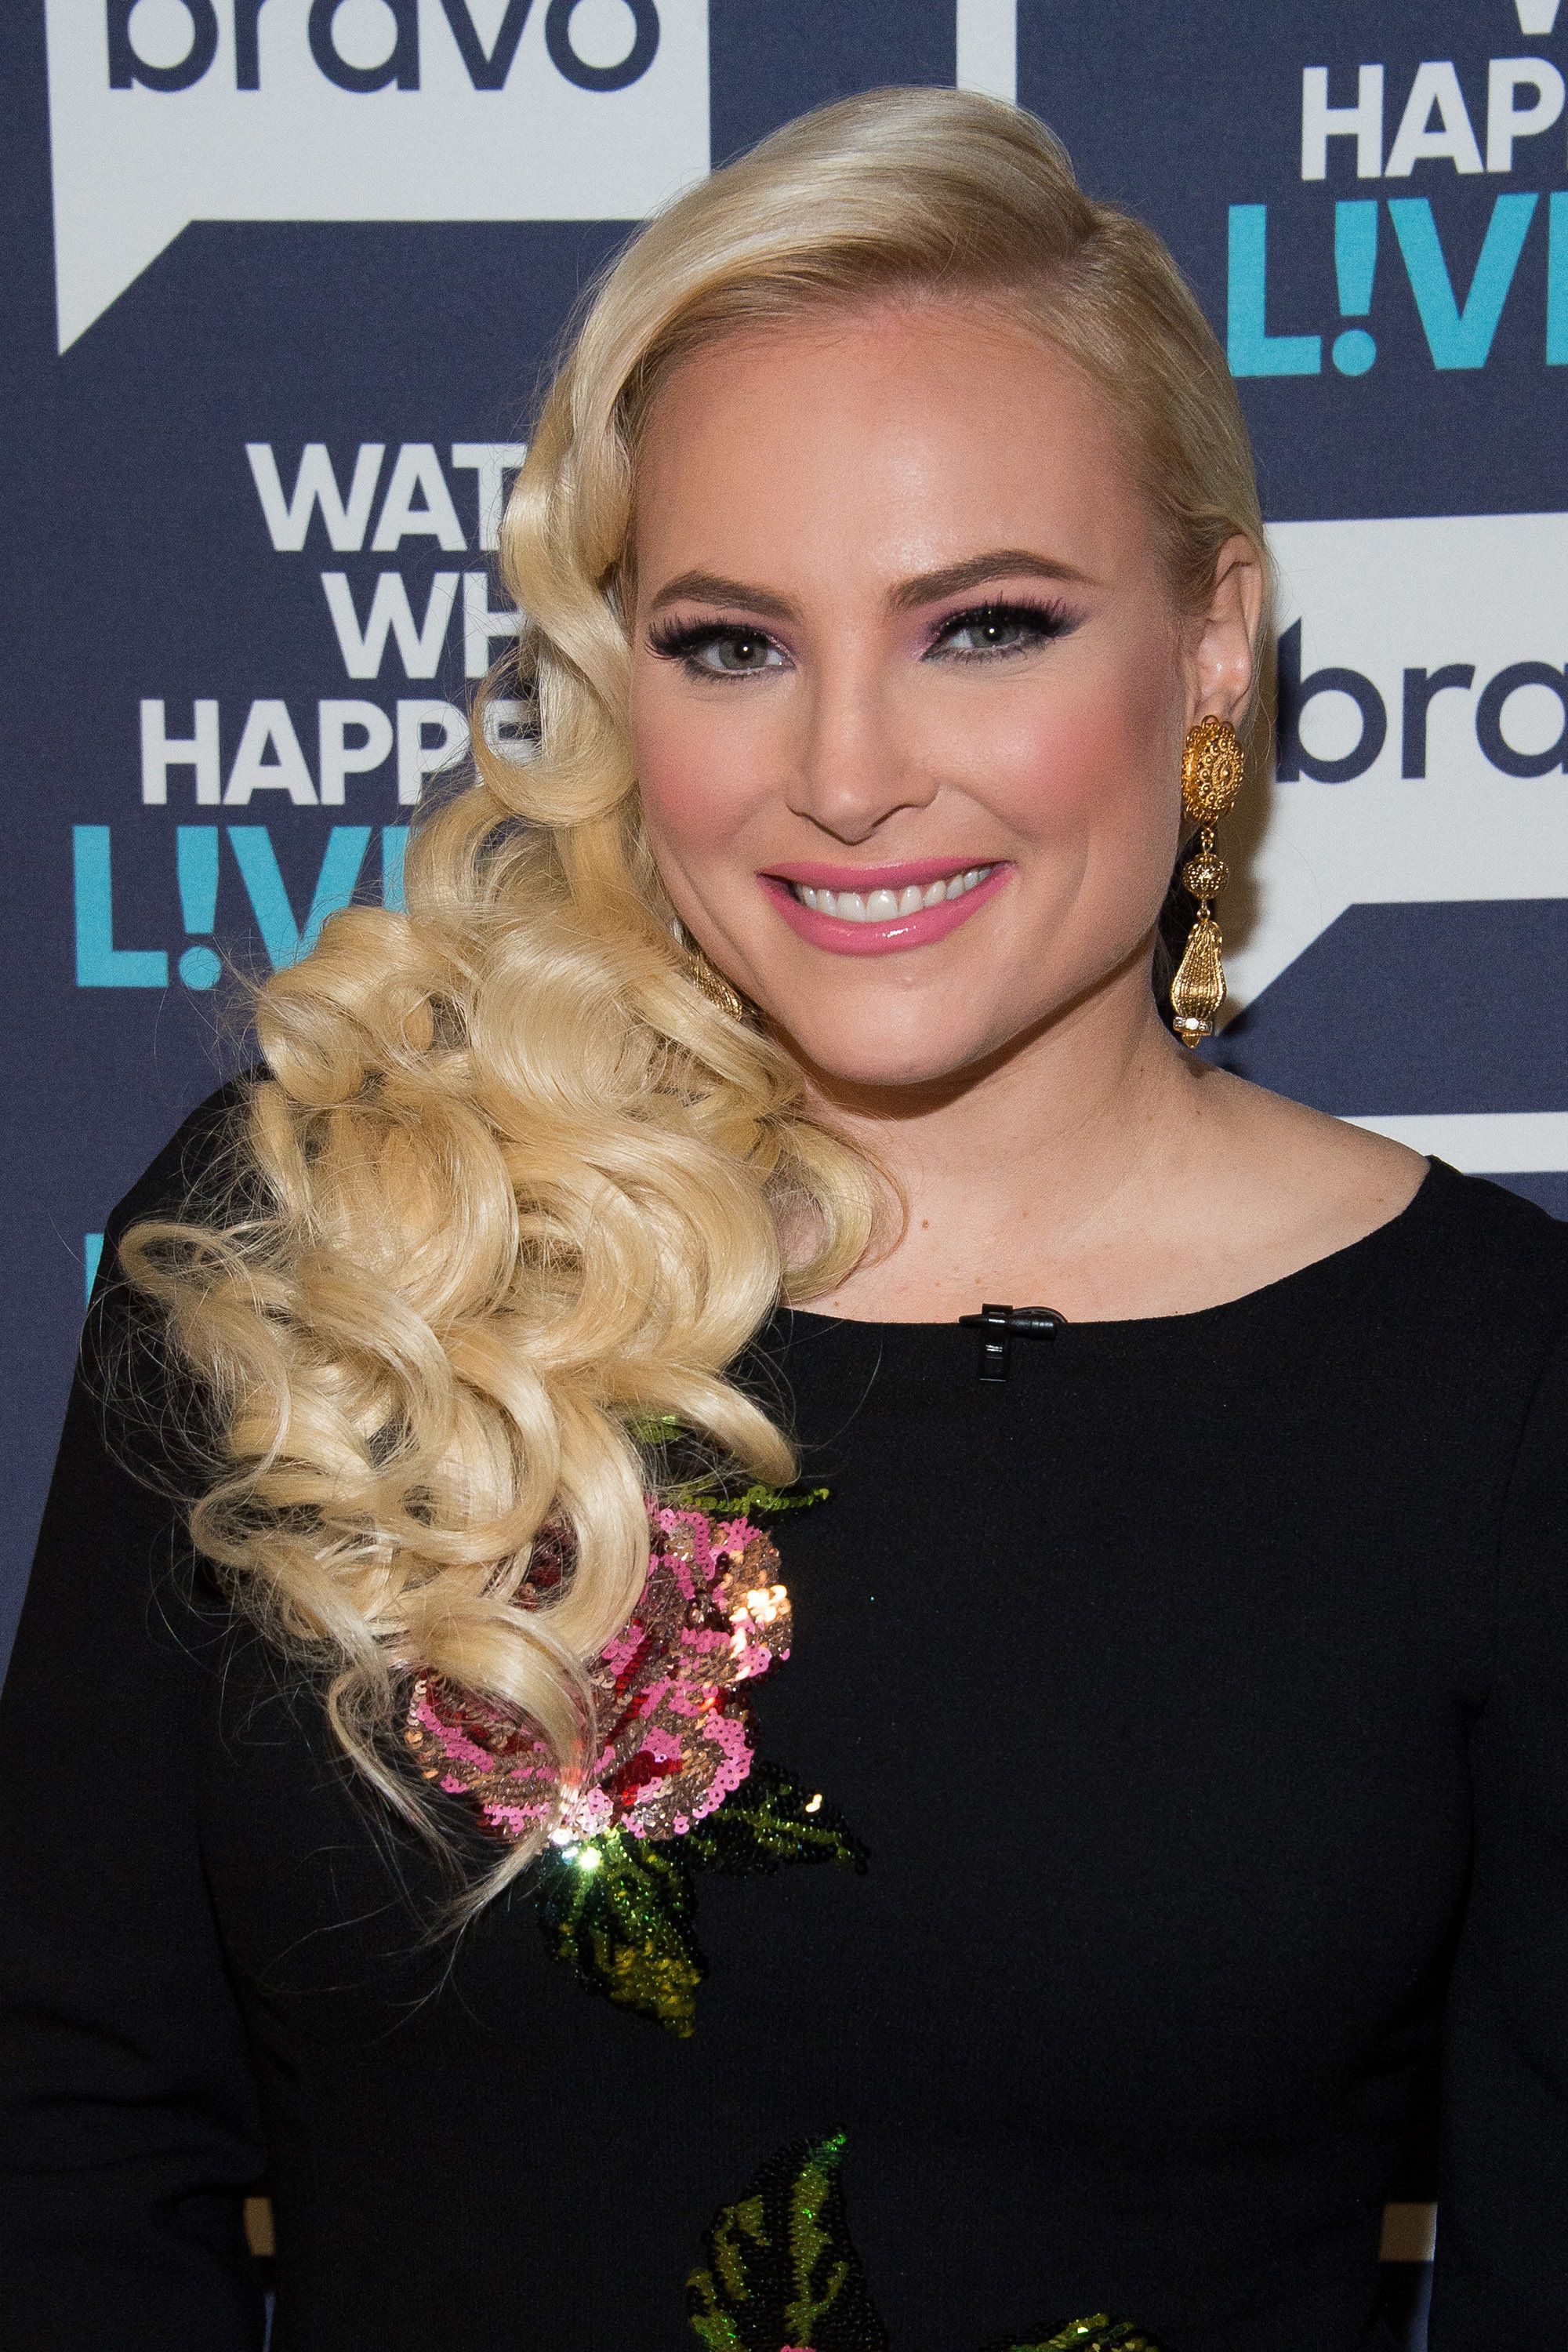 WATCH WHAT HAPPENS LIVE -- Pictured: Meghan McCain -- (Photo by: Charles Sykes/Bravo/NBCU Photo Bank via Getty Images)